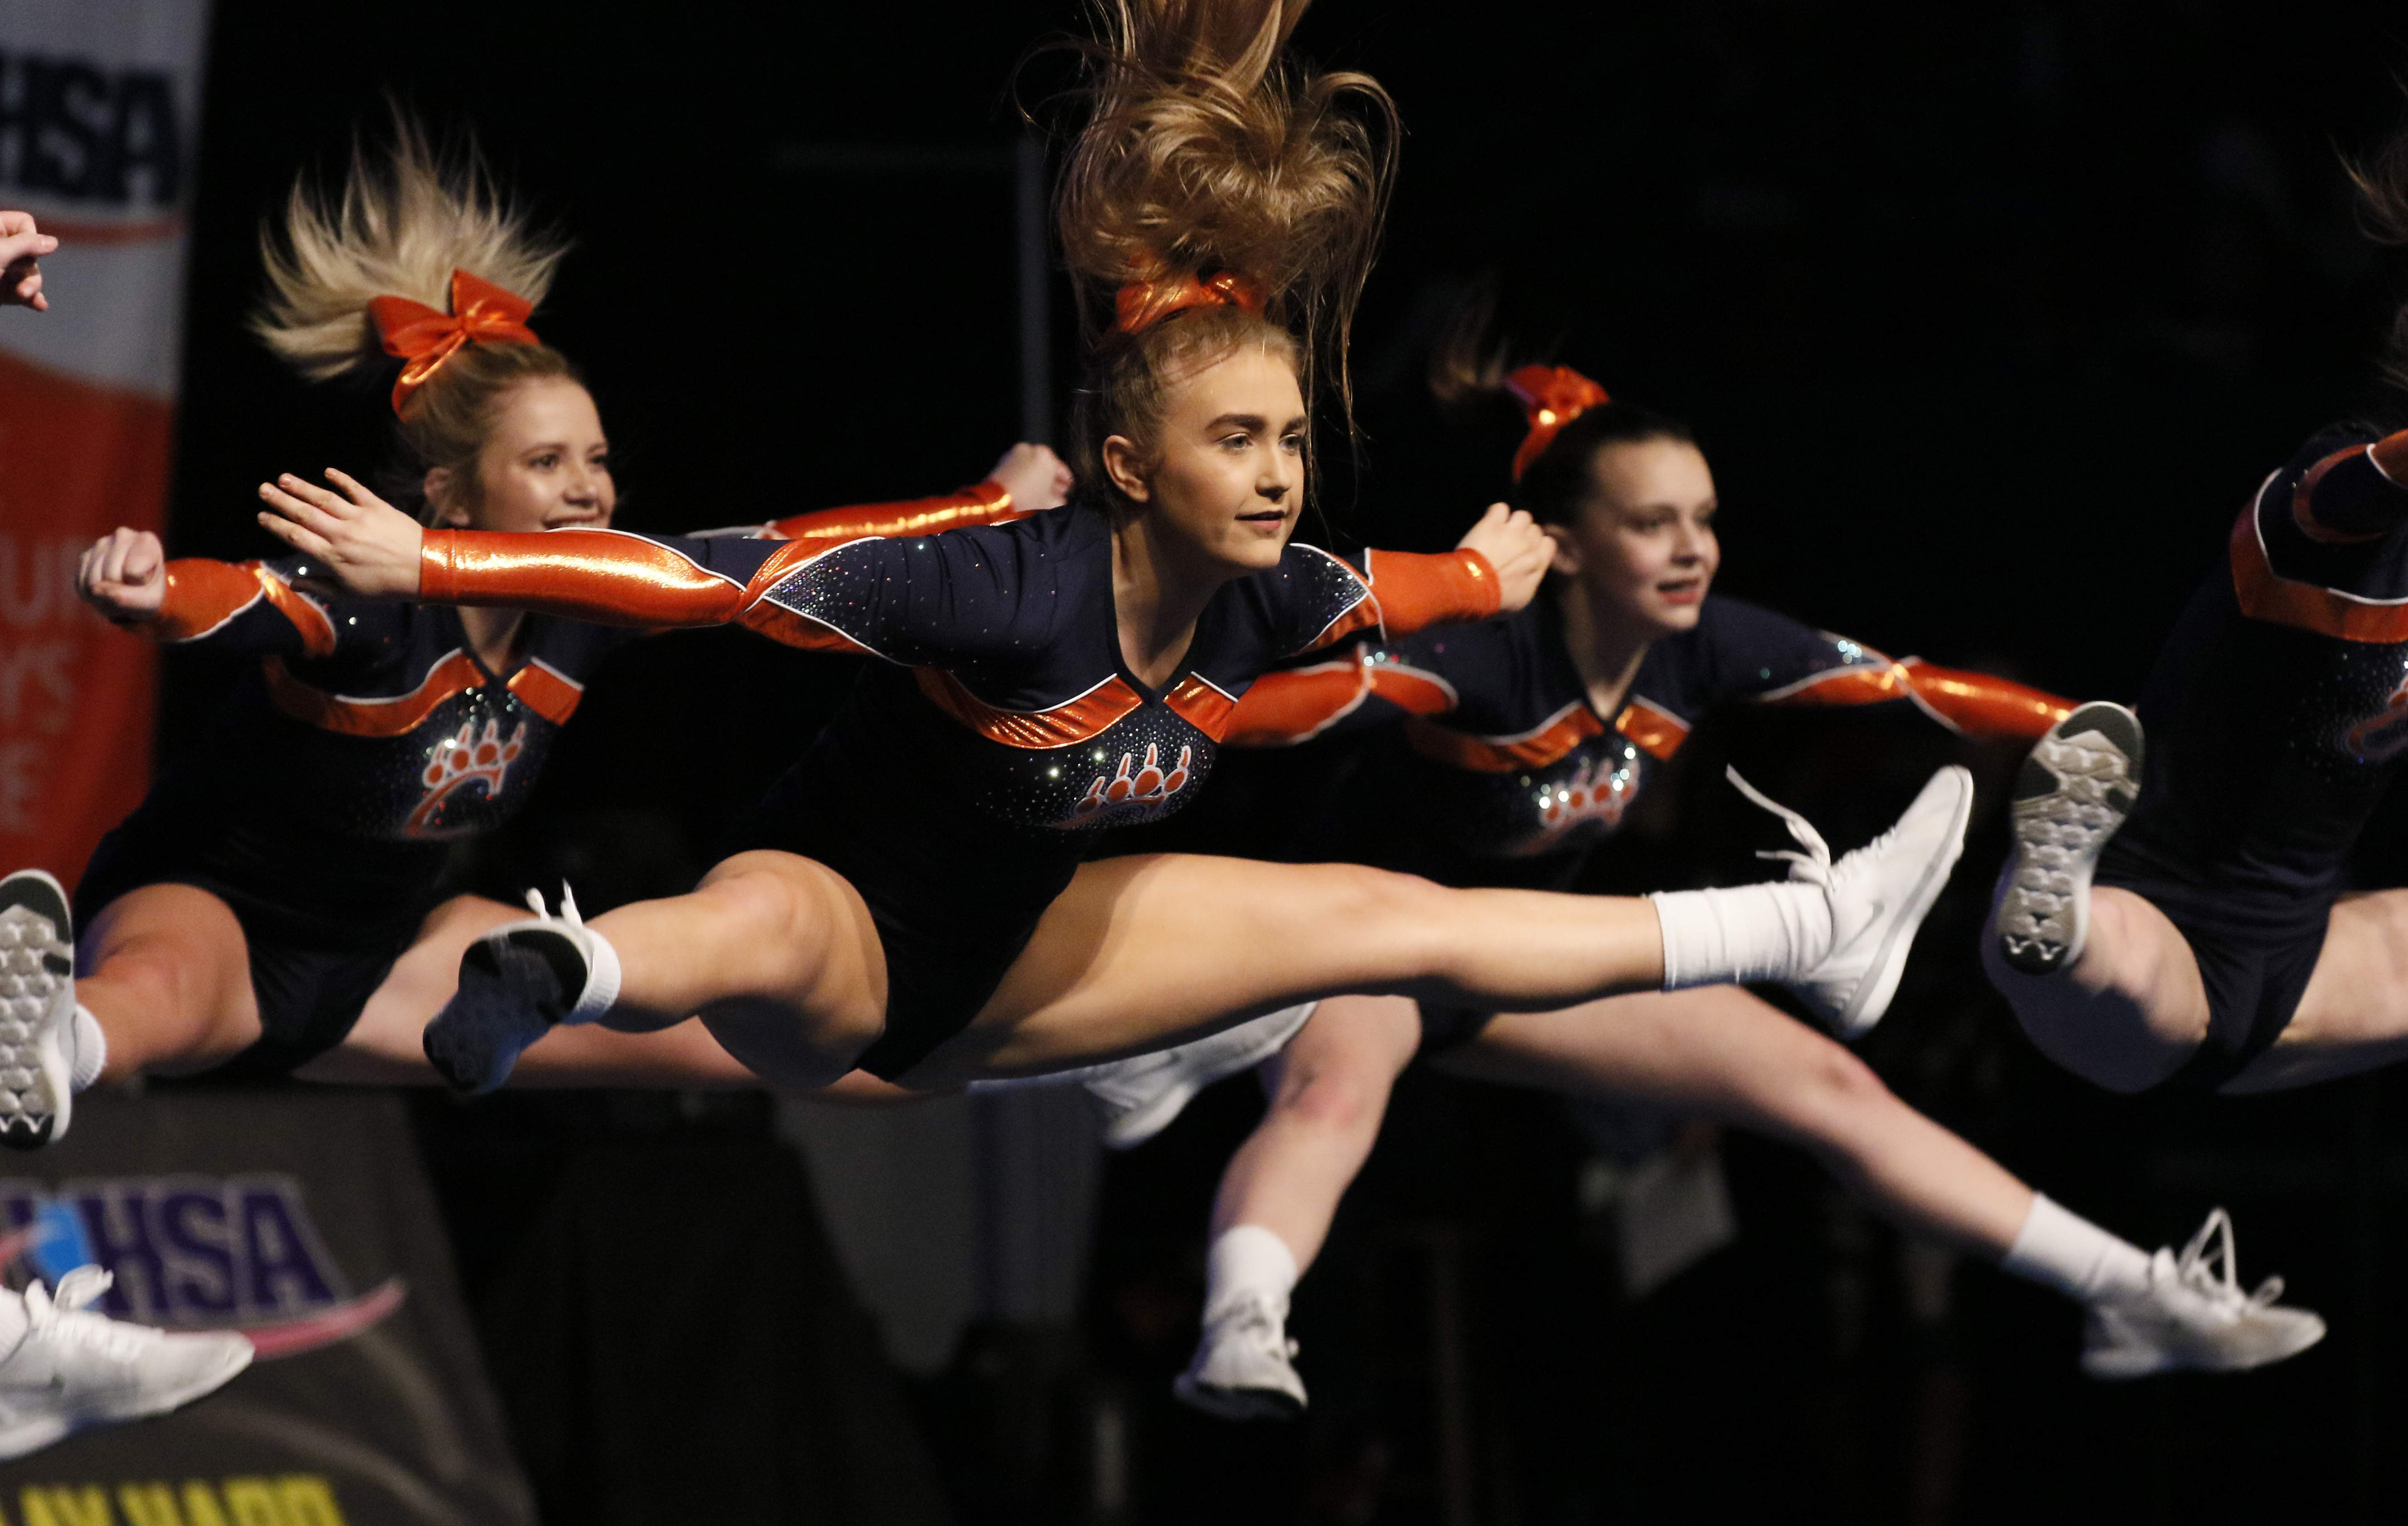 The Carterville cheerleaders go airborne in the preliminary round of the IHSA Cheerleading finals in Bloomington on Feb. 2.